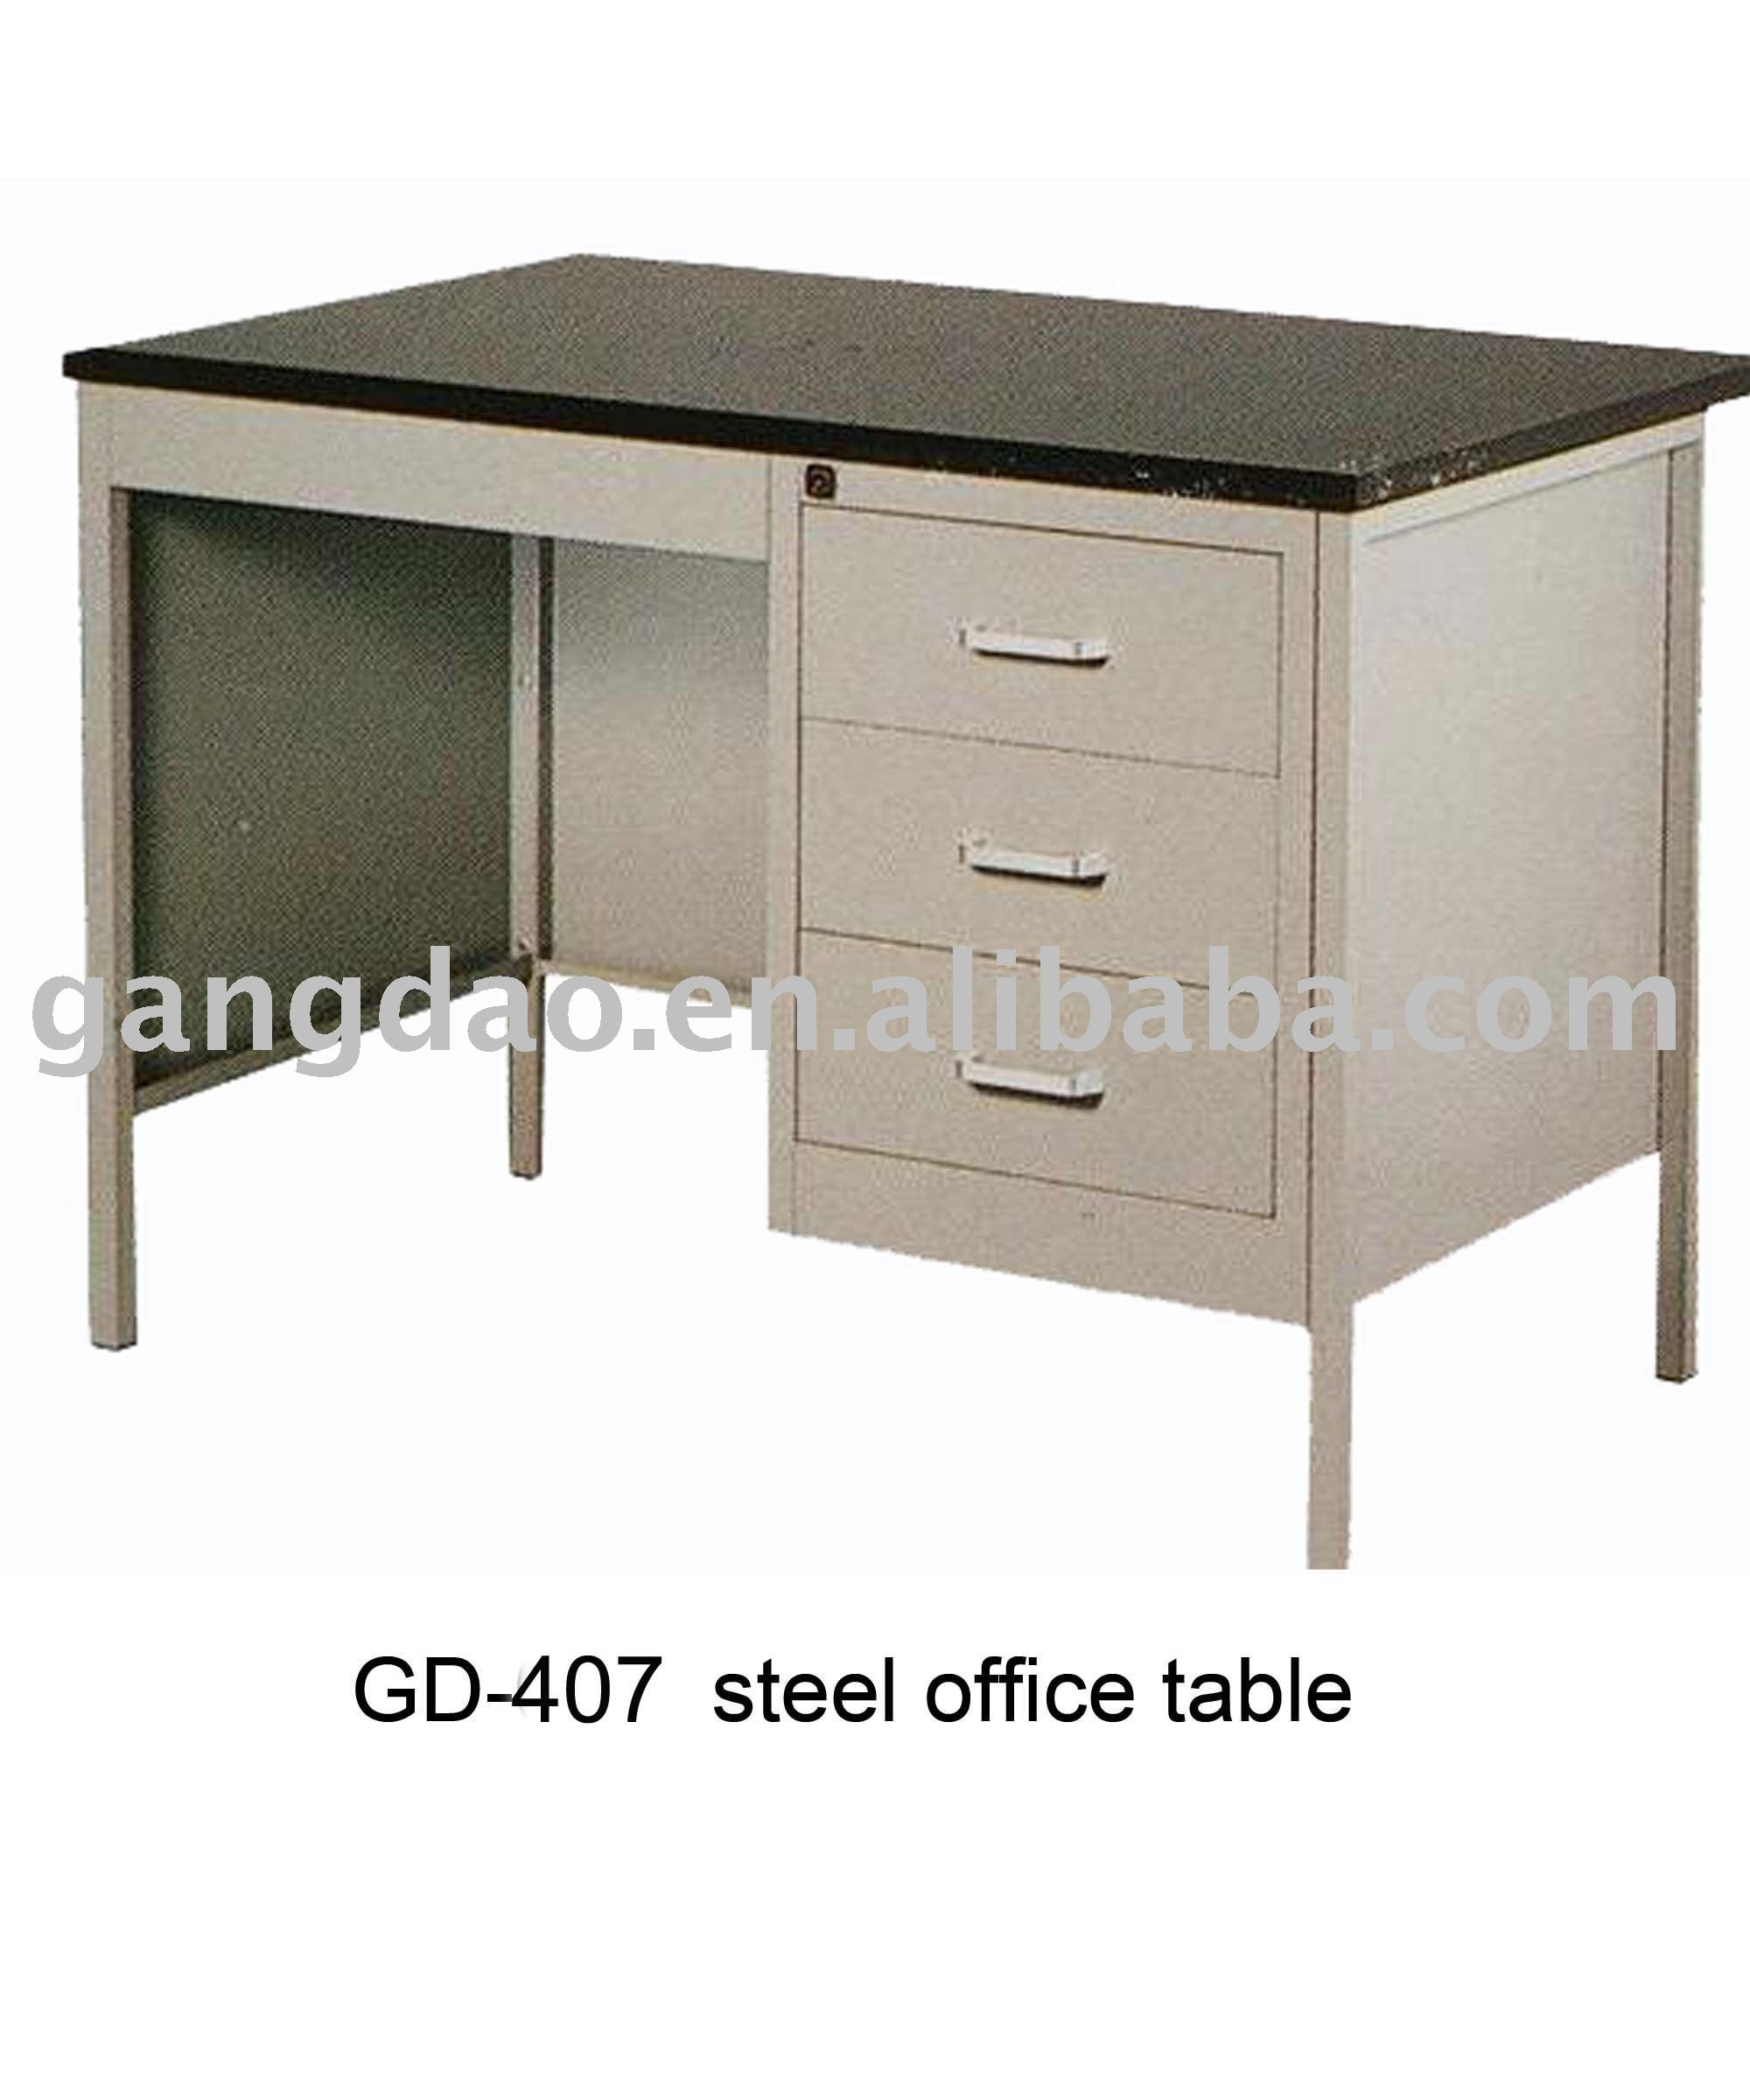 fireproof office desk, fireproof office desk suppliers and